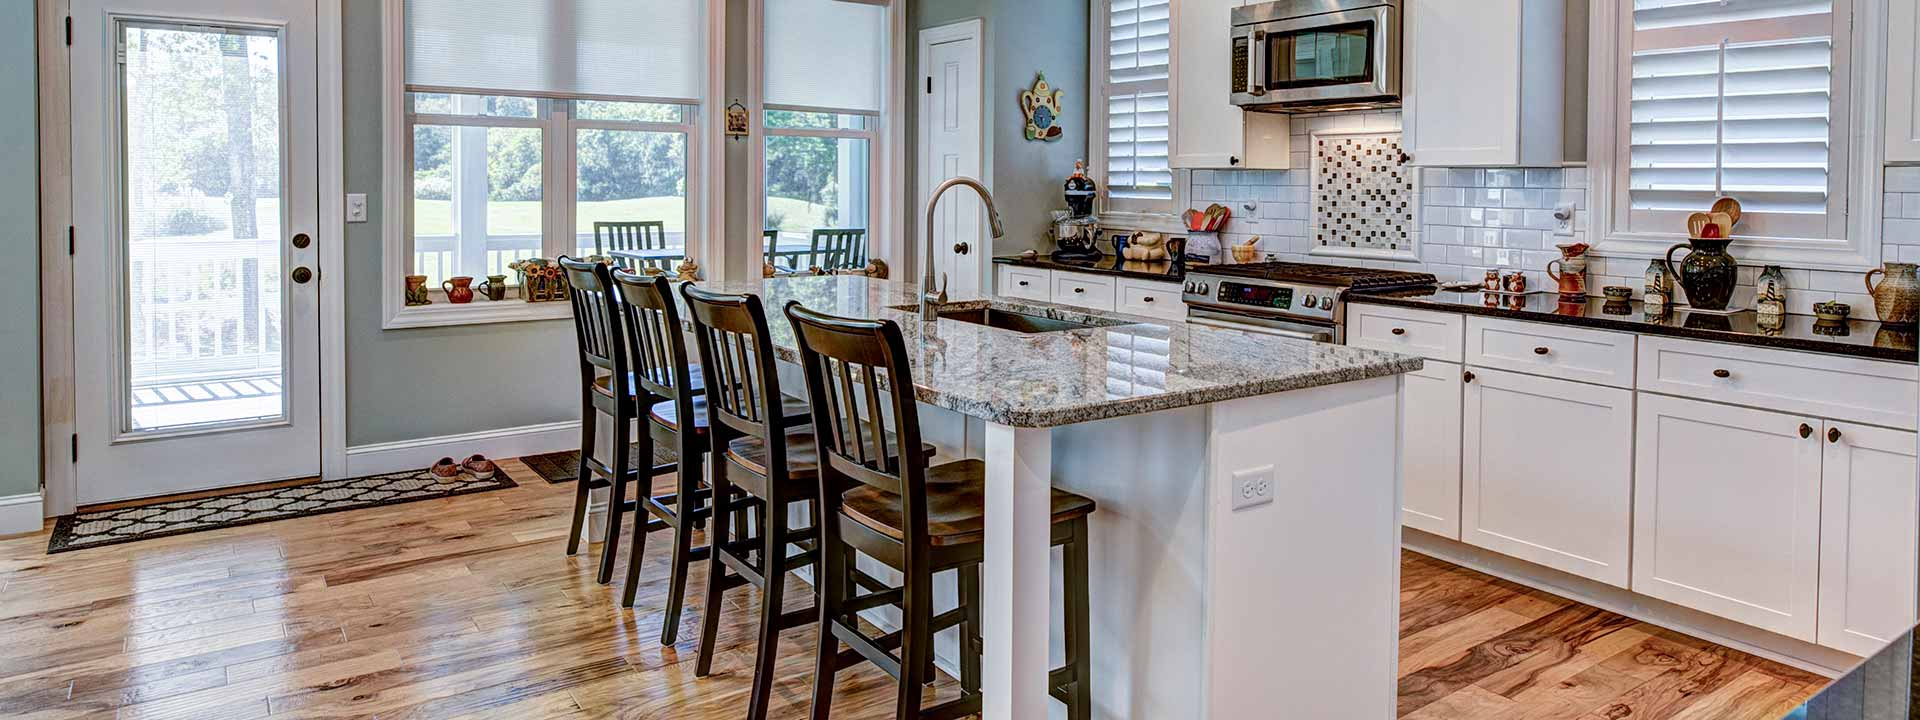 modern kitchen with island counter top and chairs